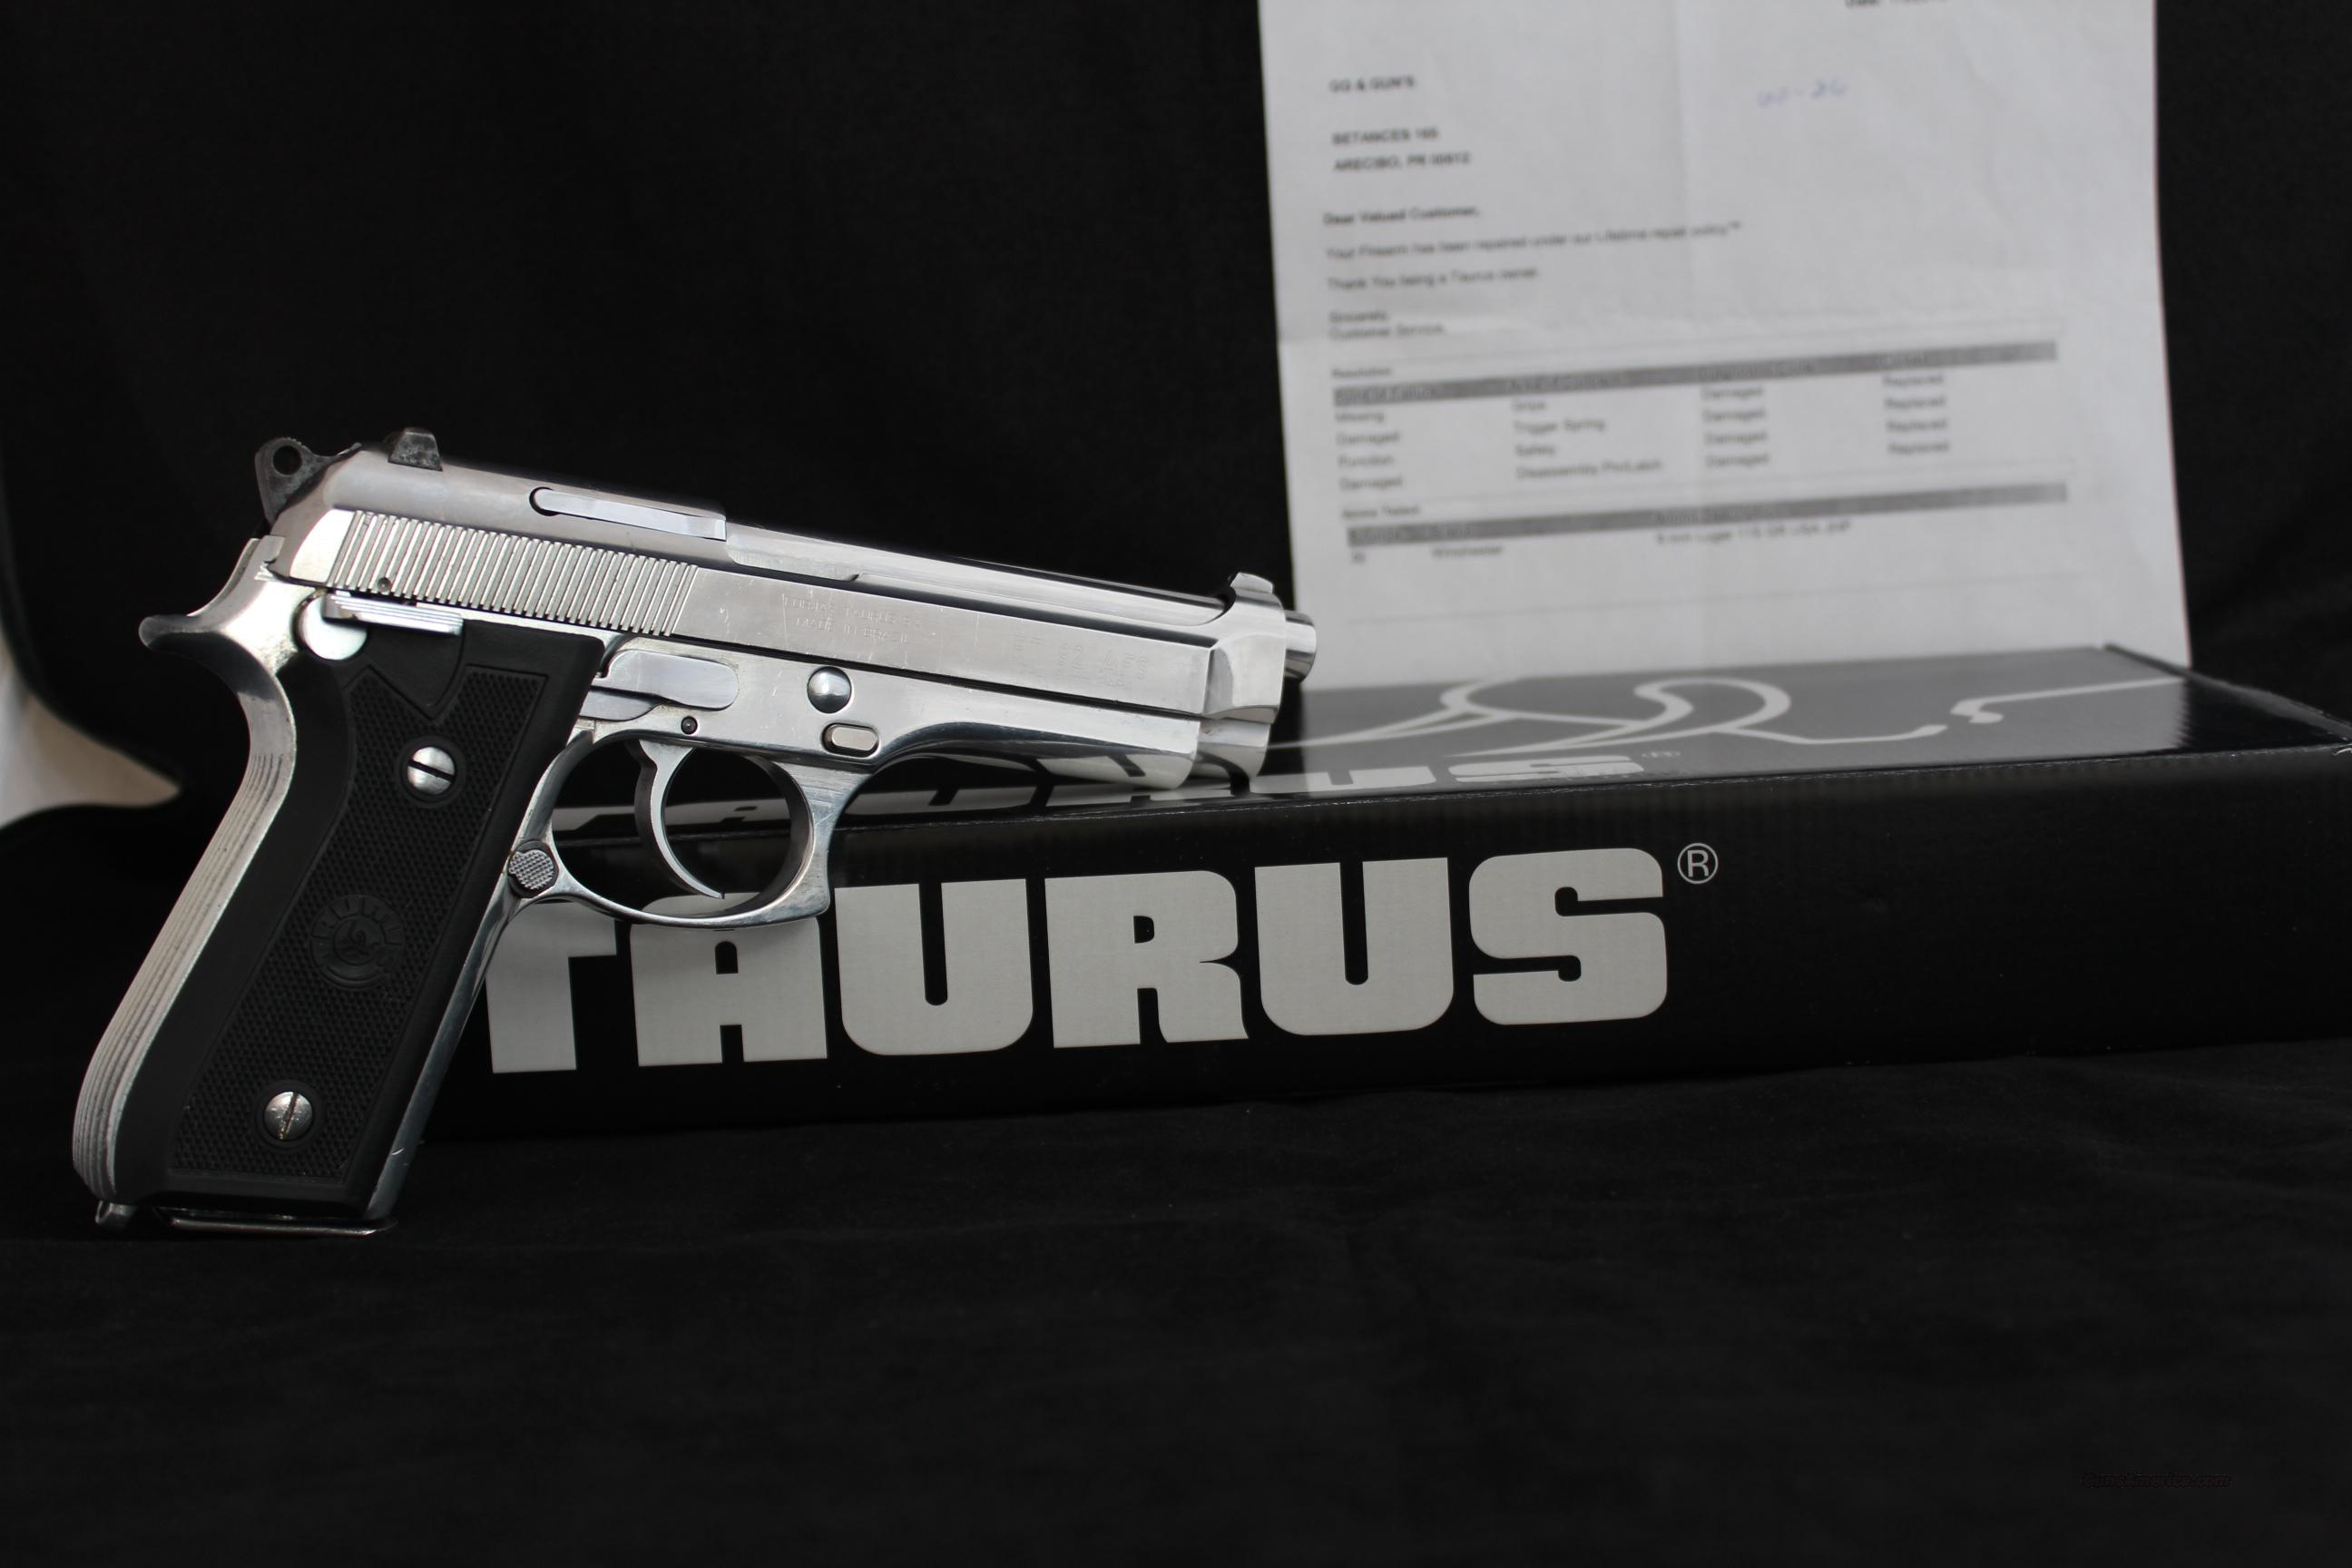 Taurus PT92 (Factory Refurbished W/ New Parts)  Guns > Pistols > Taurus Pistols/Revolvers > Pistols > Steel Frame